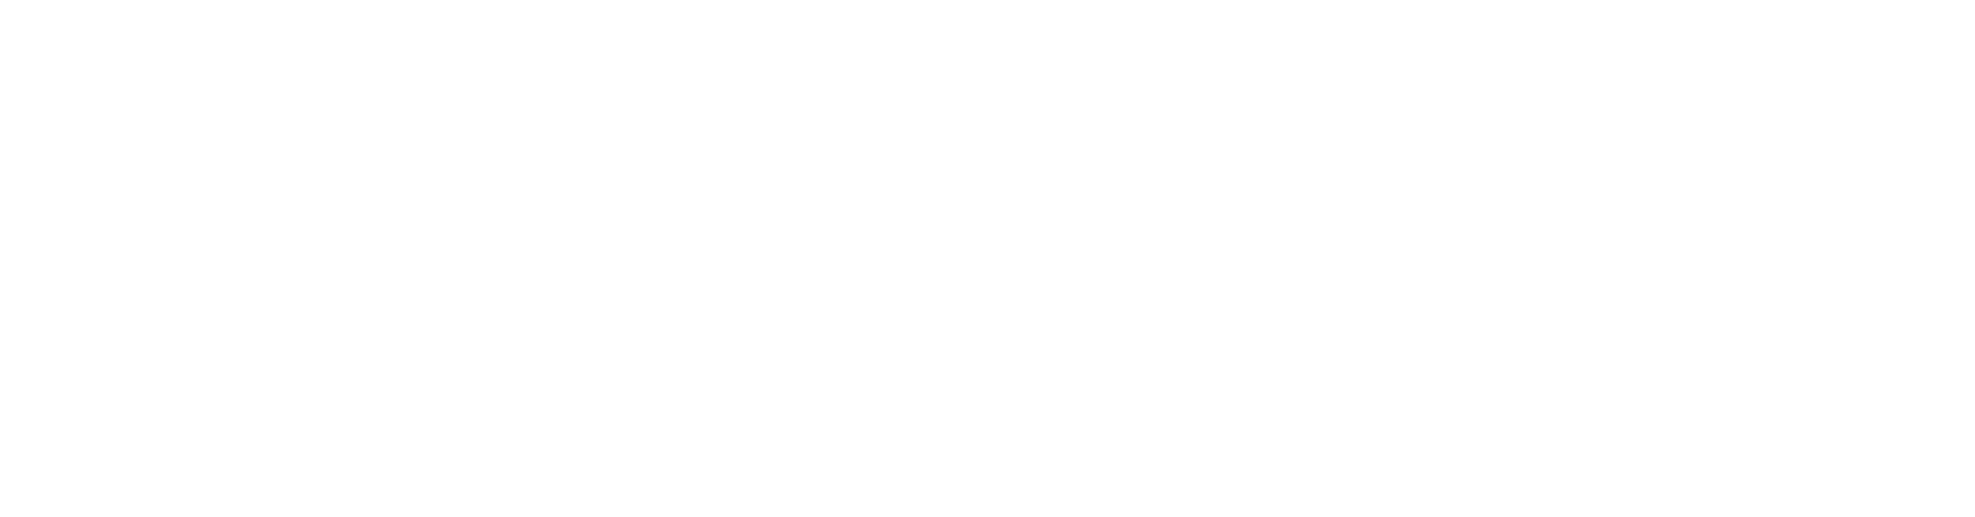 University at Buffalo Alberti Center for Bullying Abuse Prevention